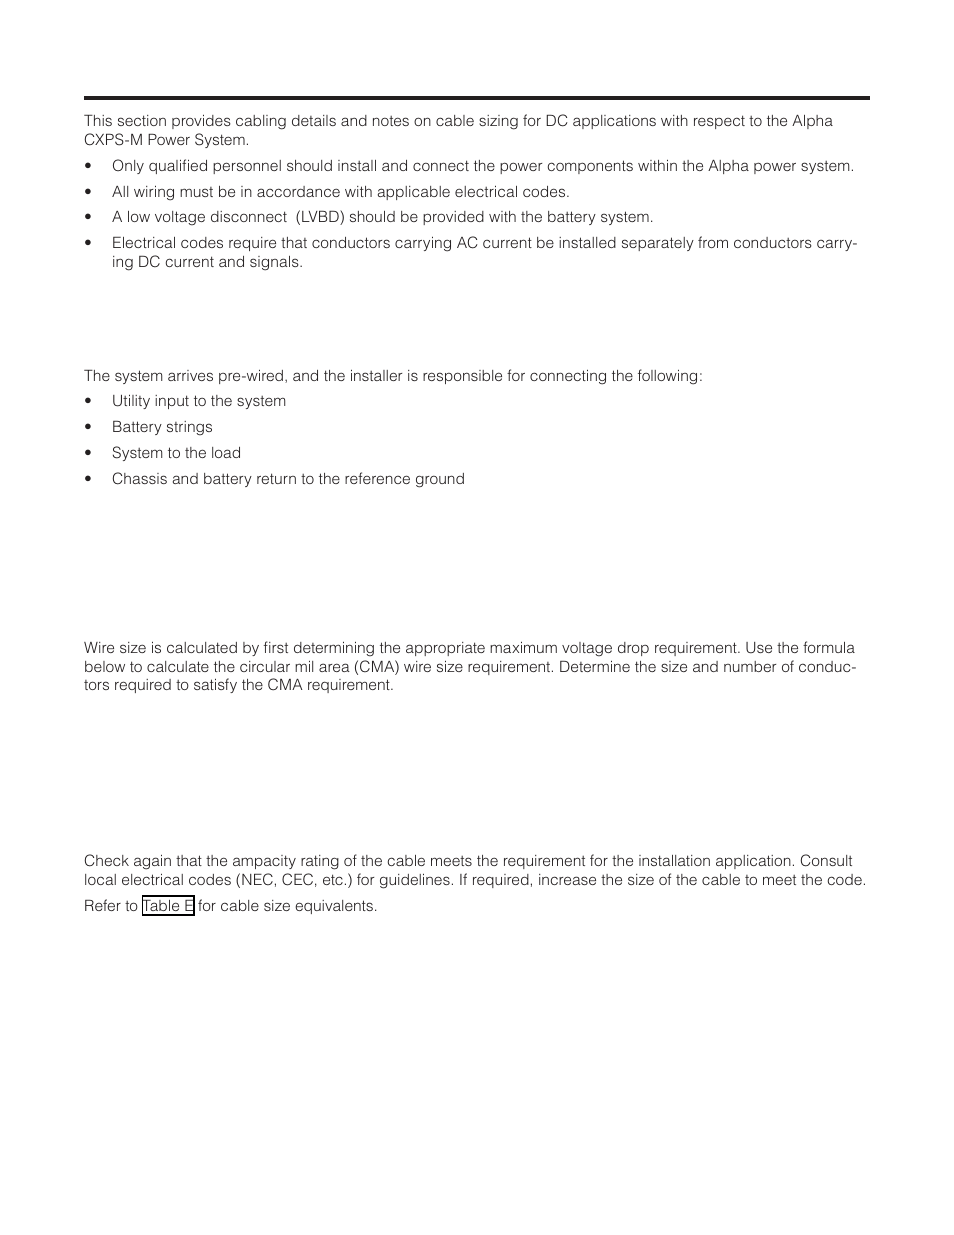 Installation ac dc and grounding cables 1 installation notes installation ac dc and grounding cables 1 installation notes alpha technologies cordex cxps m 4824 1200600a user manual page 39 68 keyboard keysfo Gallery